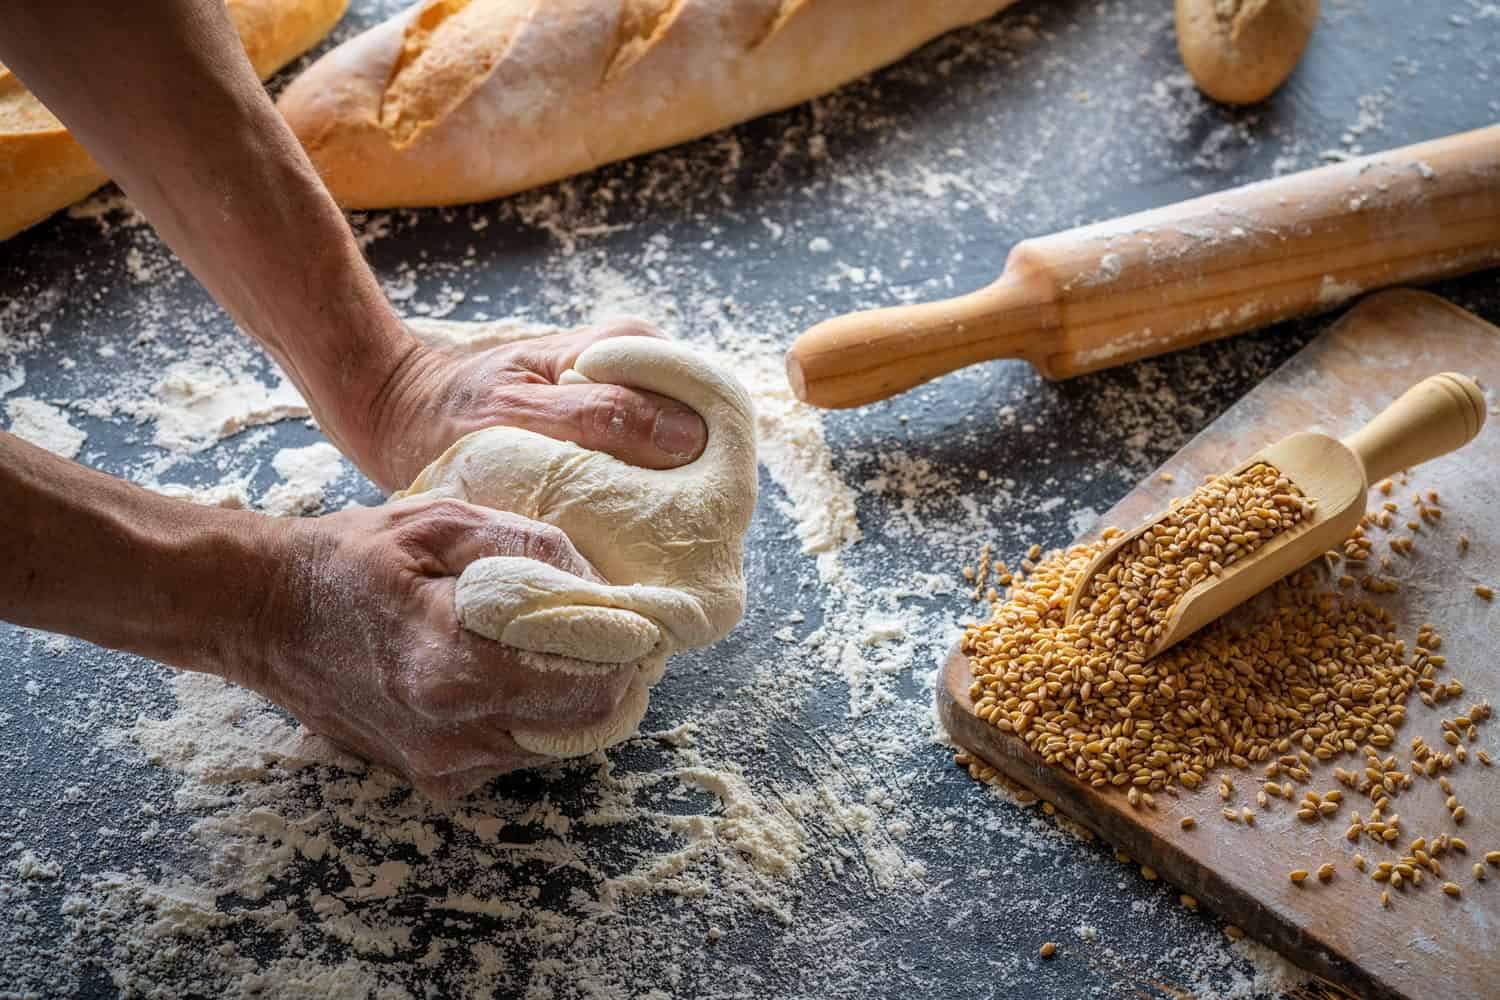 Baker man hands breadmaking kneading bread dough, How Long To Knead Bread [By Hand And In A Mixer]